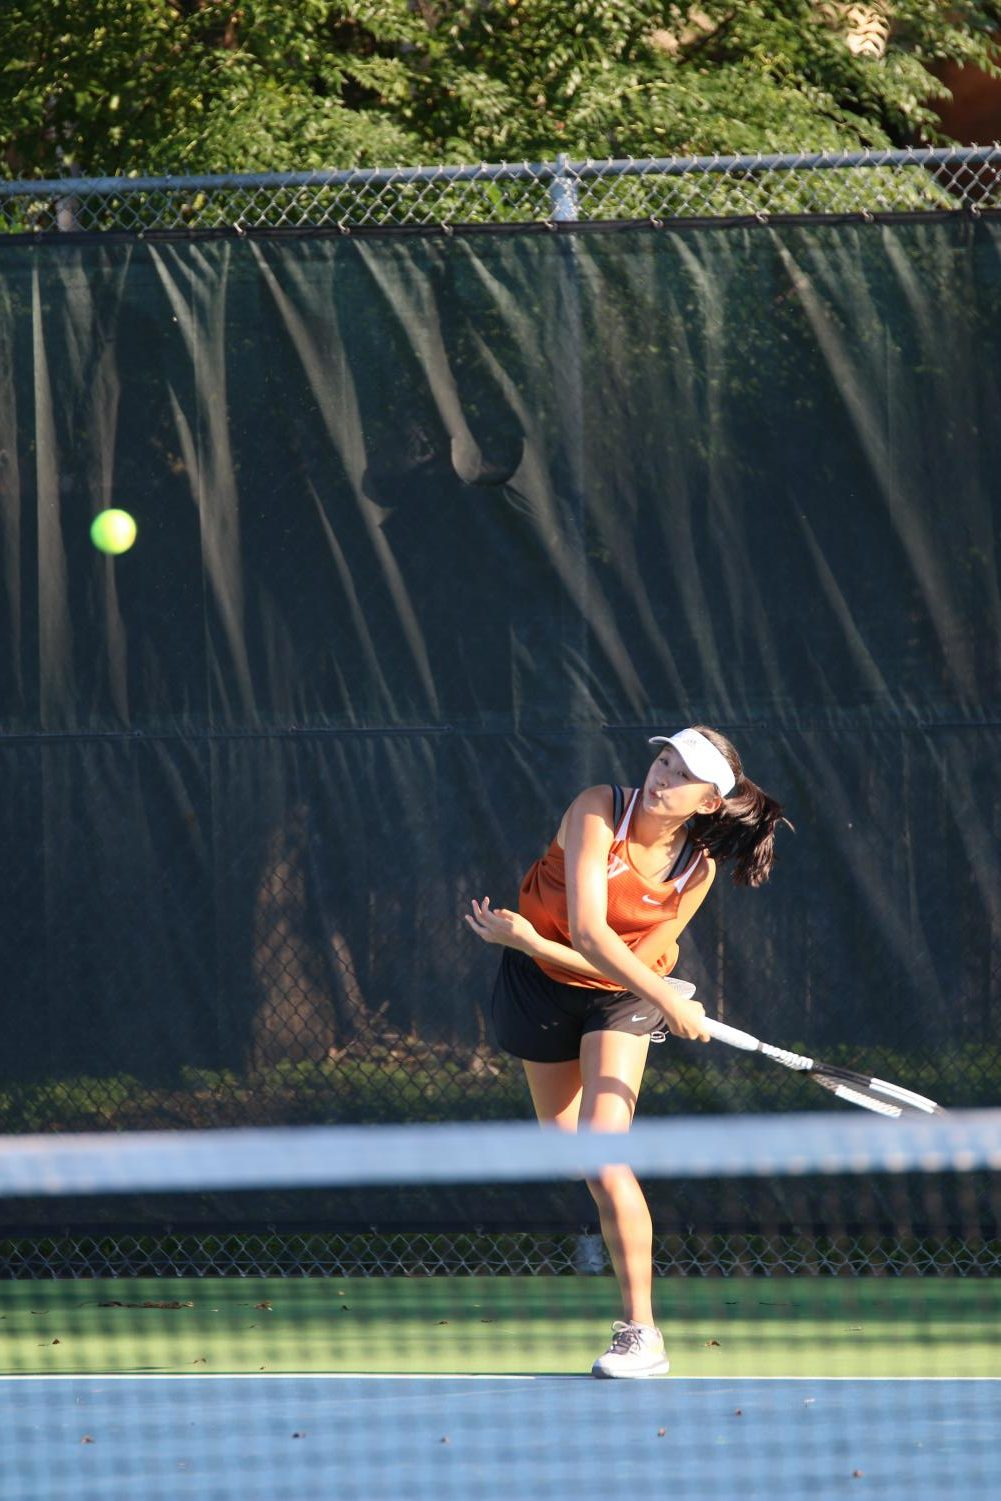 To+begin+her+singles+match%2C+Jessica+Lu+%2721+serves+the+ball+to+her+opponent.